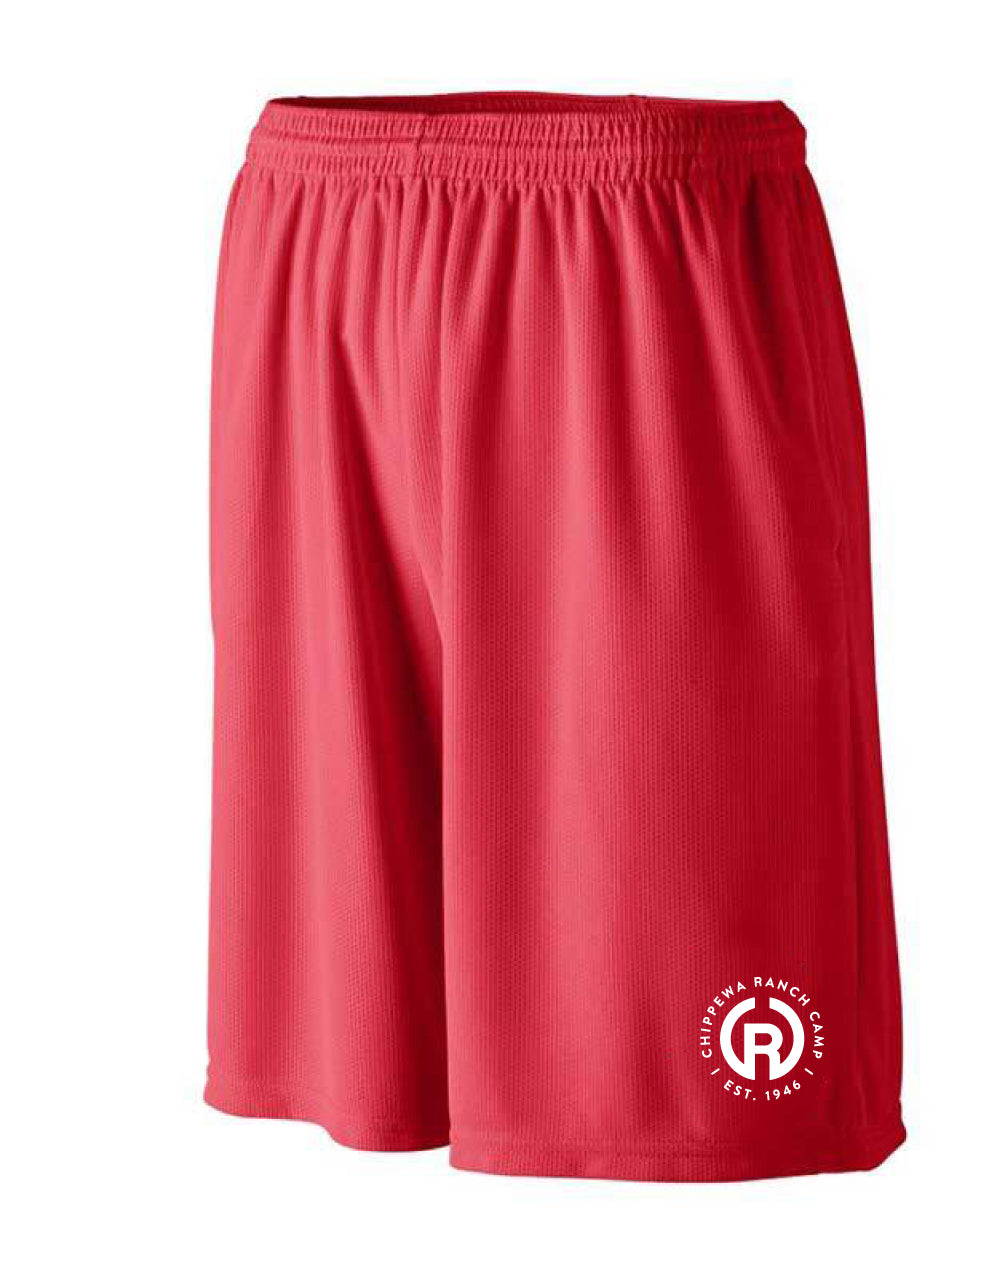 CRC Mesh Shorts with Pocket